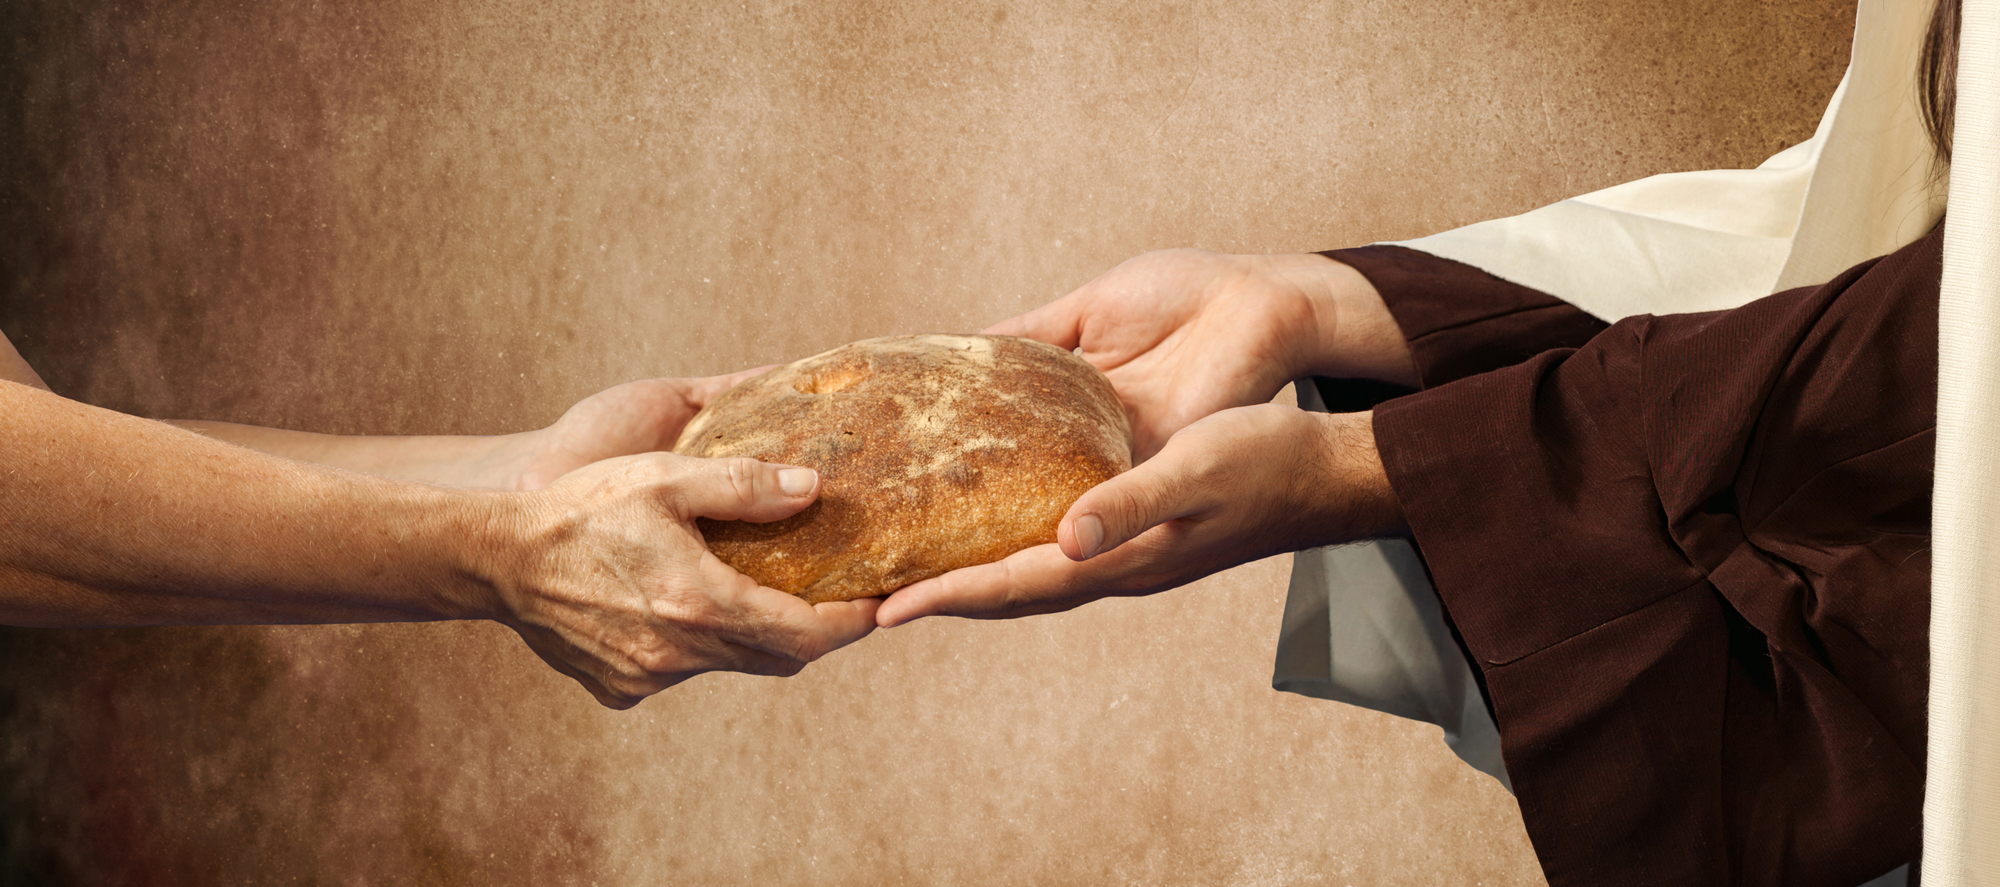 Jesus gives the bread to a beggar.